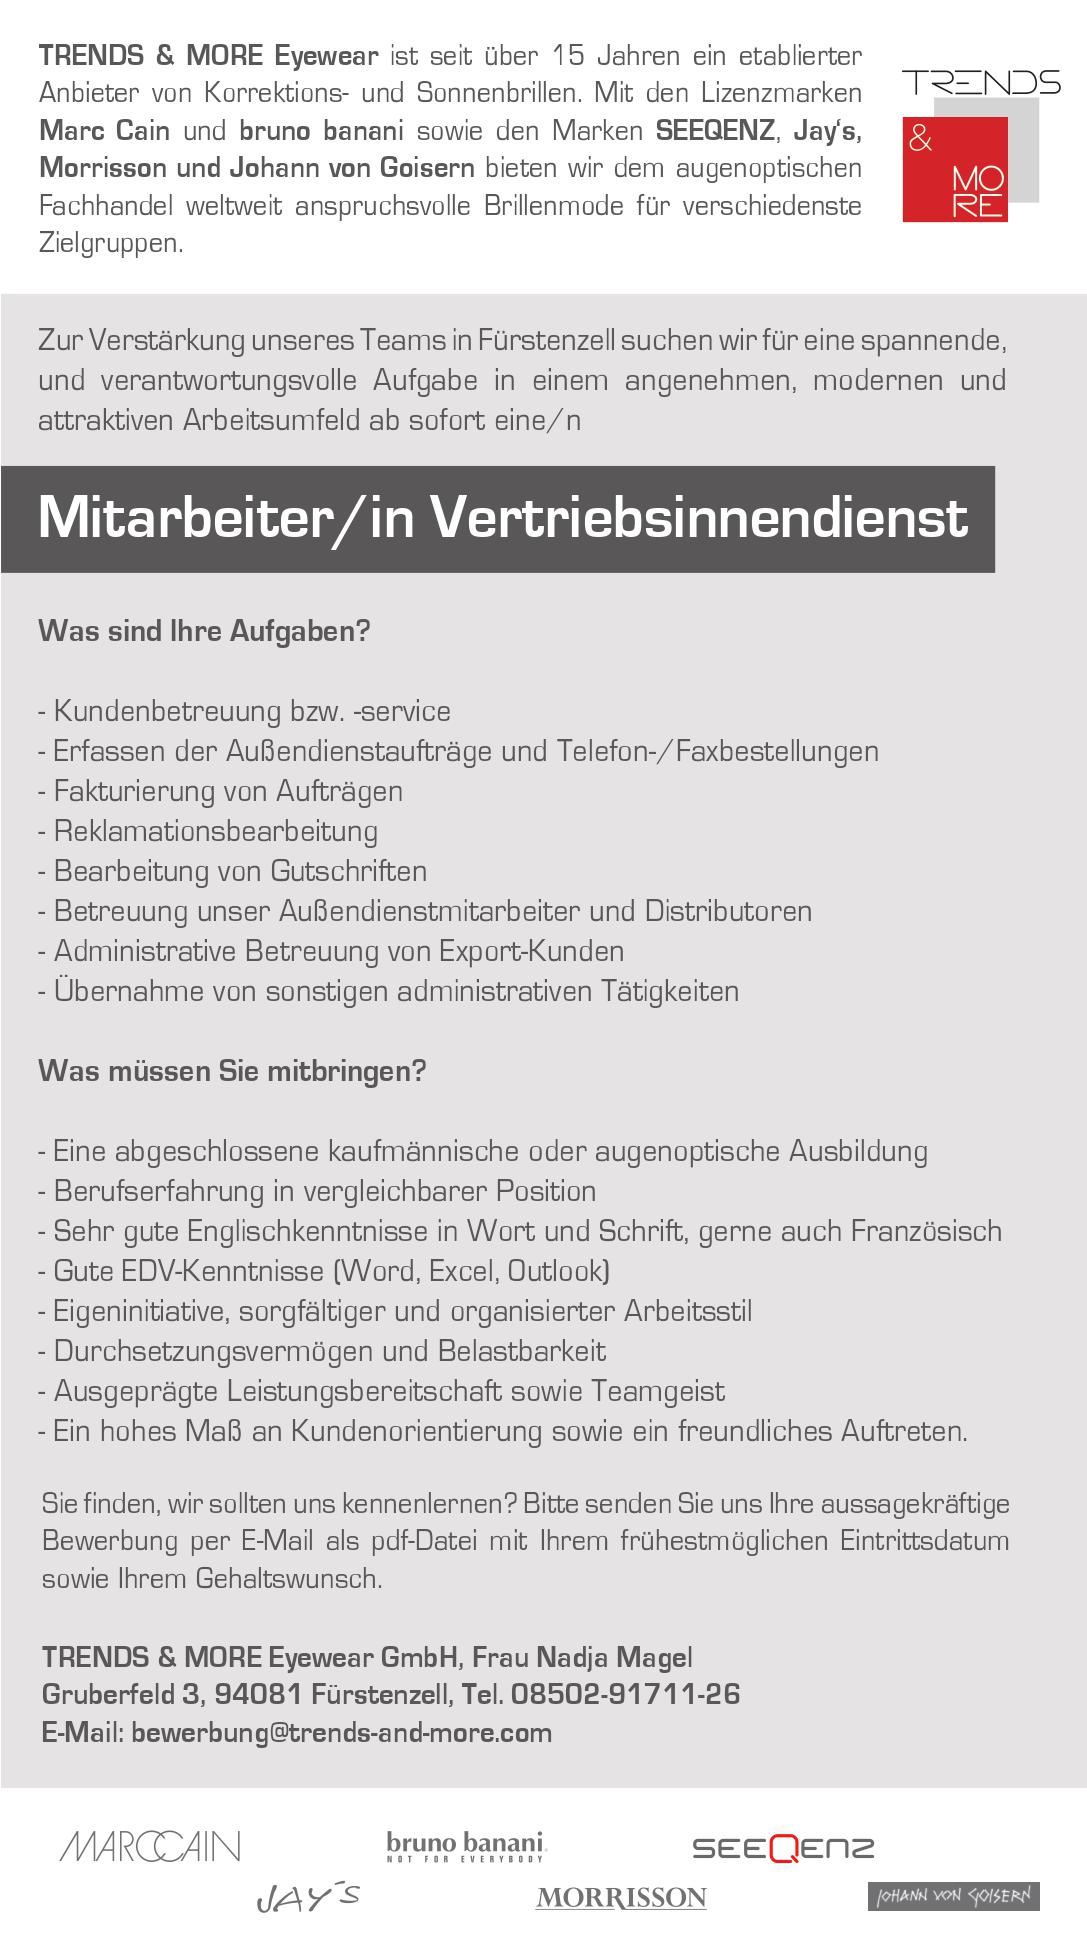 Charmant Budgetvarianzanalysevorlage Ideen - Entry Level Resume ...